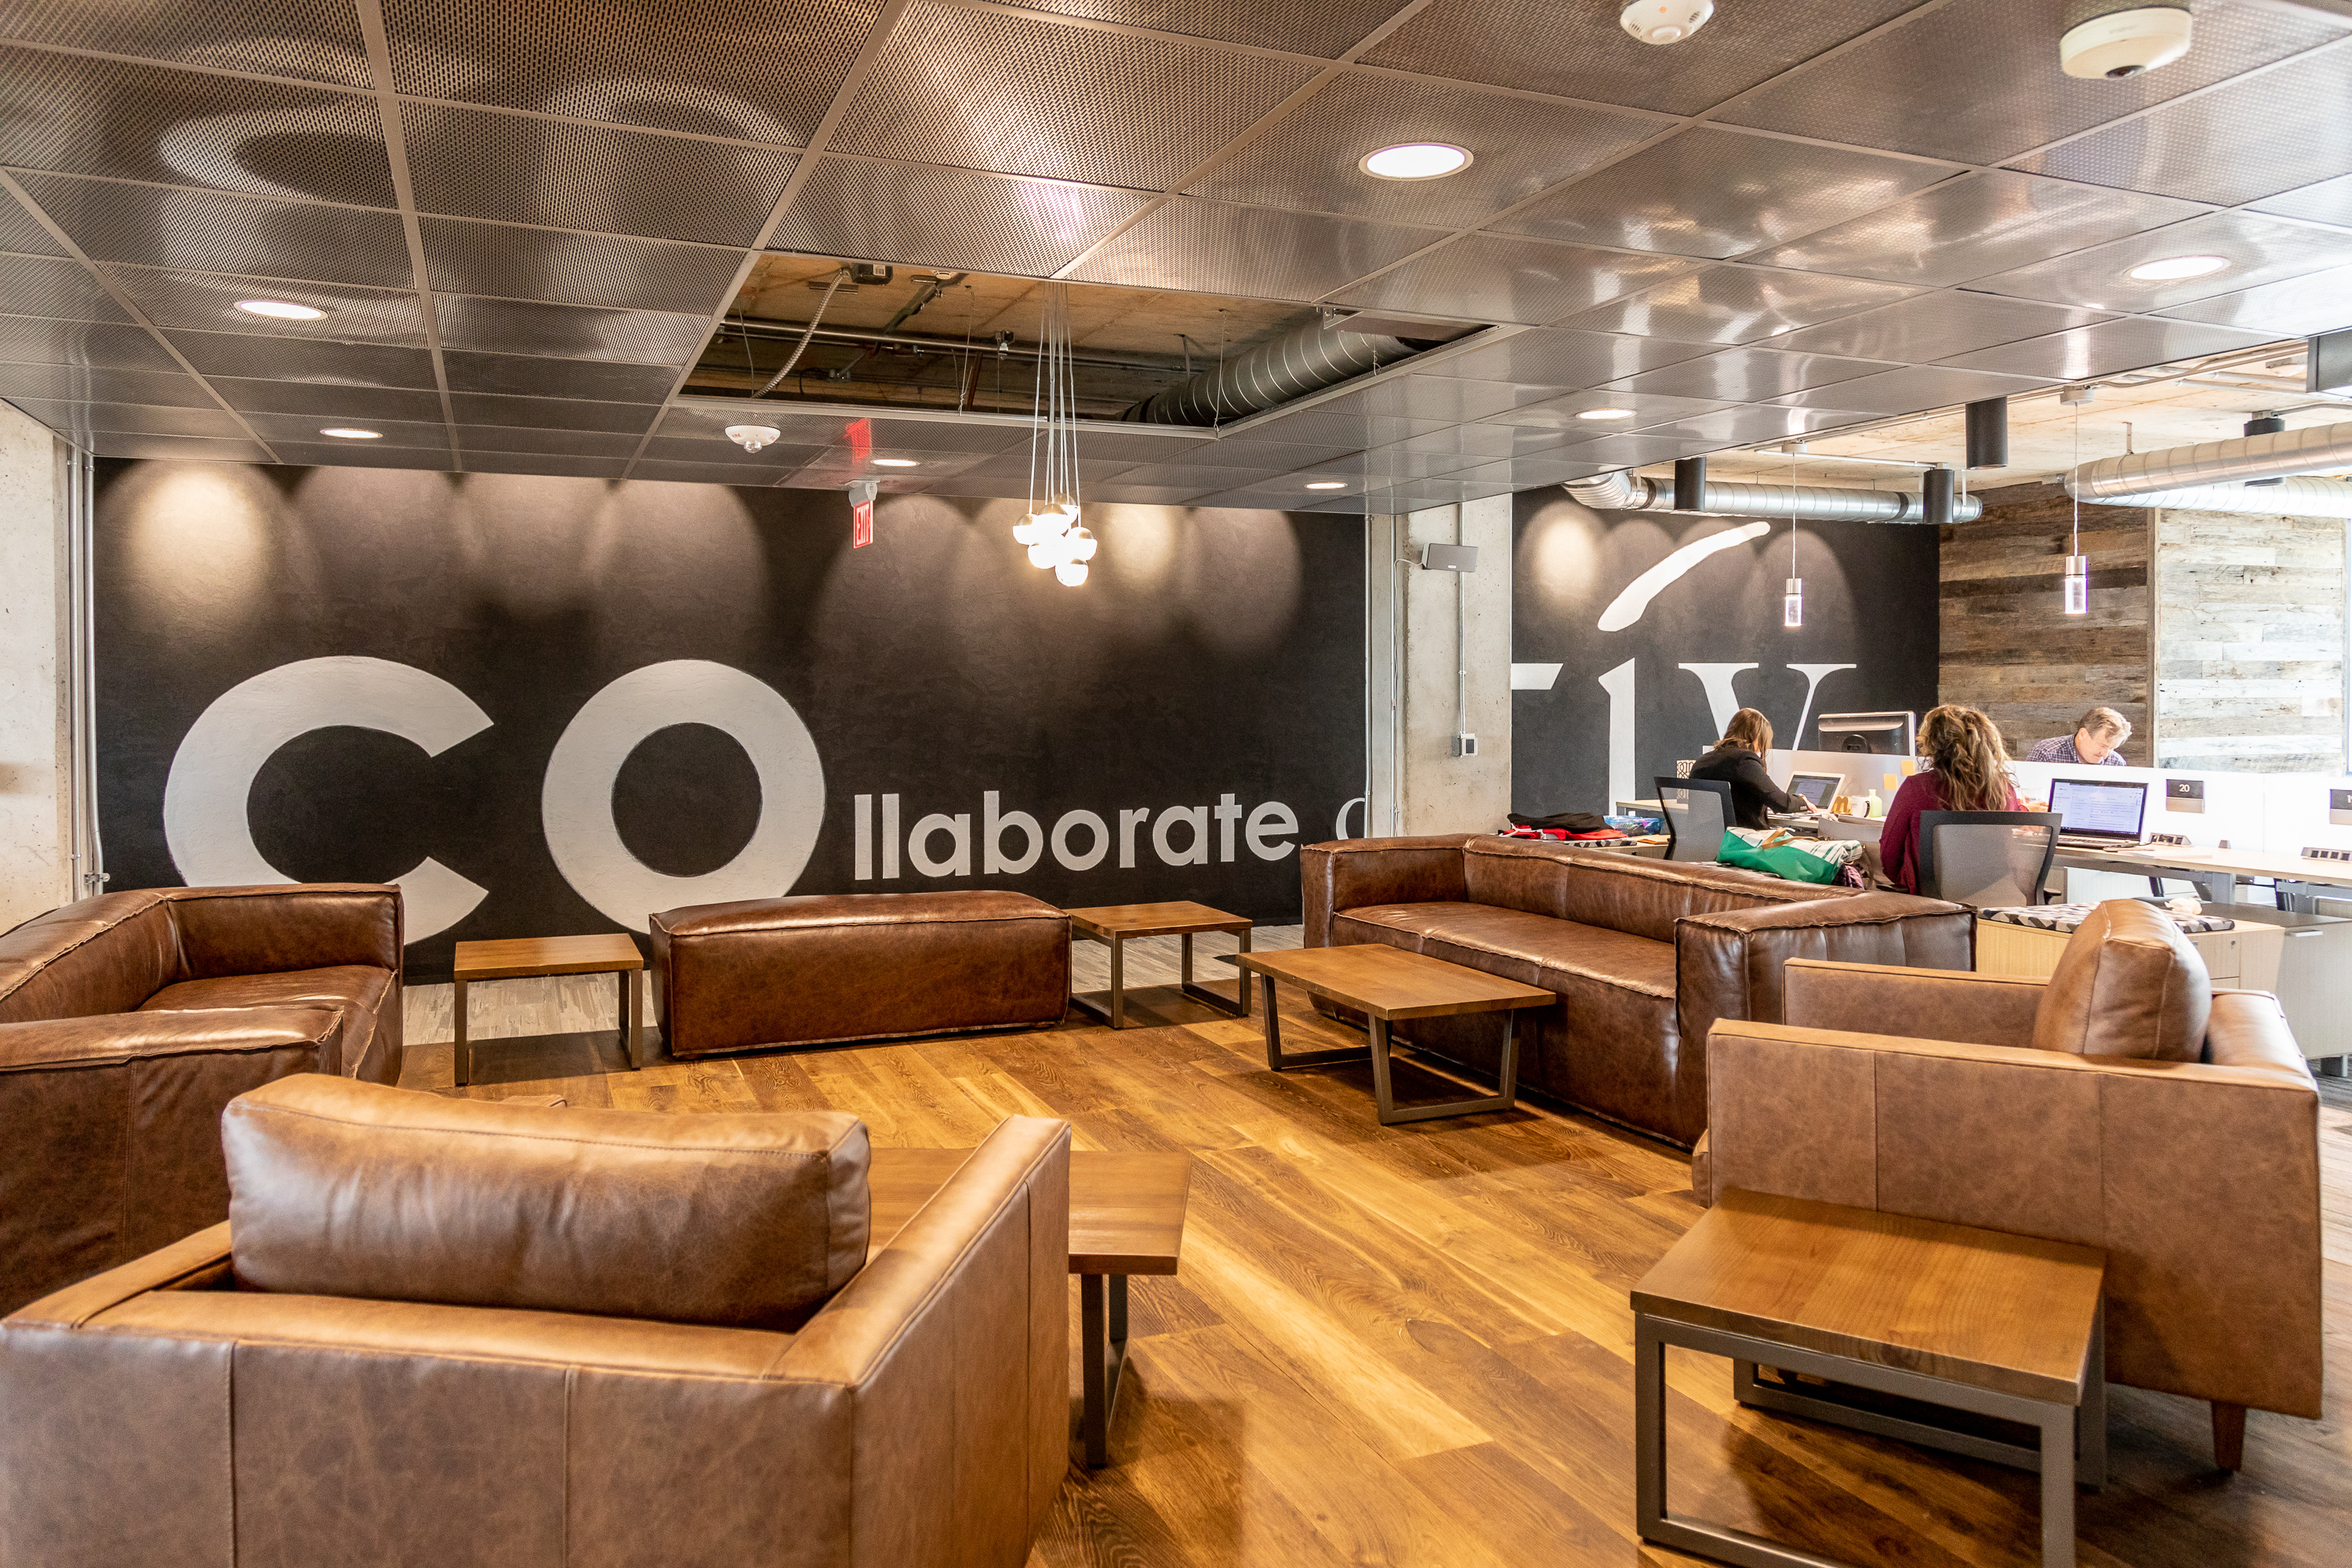 coworking space couches